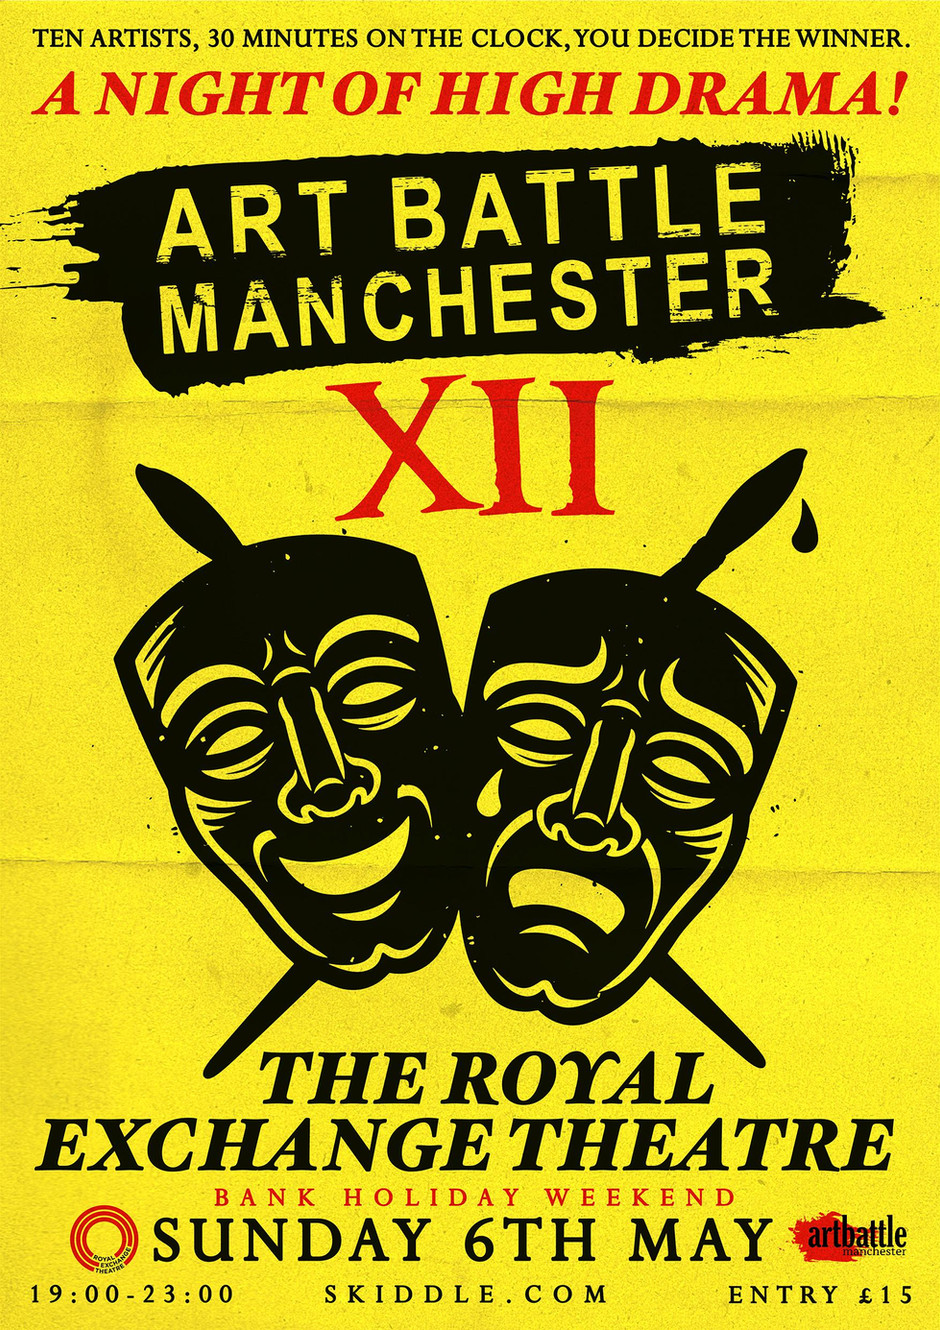 art battle manchester xii - a night of high drama on sunday 6th may 2018 - Featuring Emma Evans